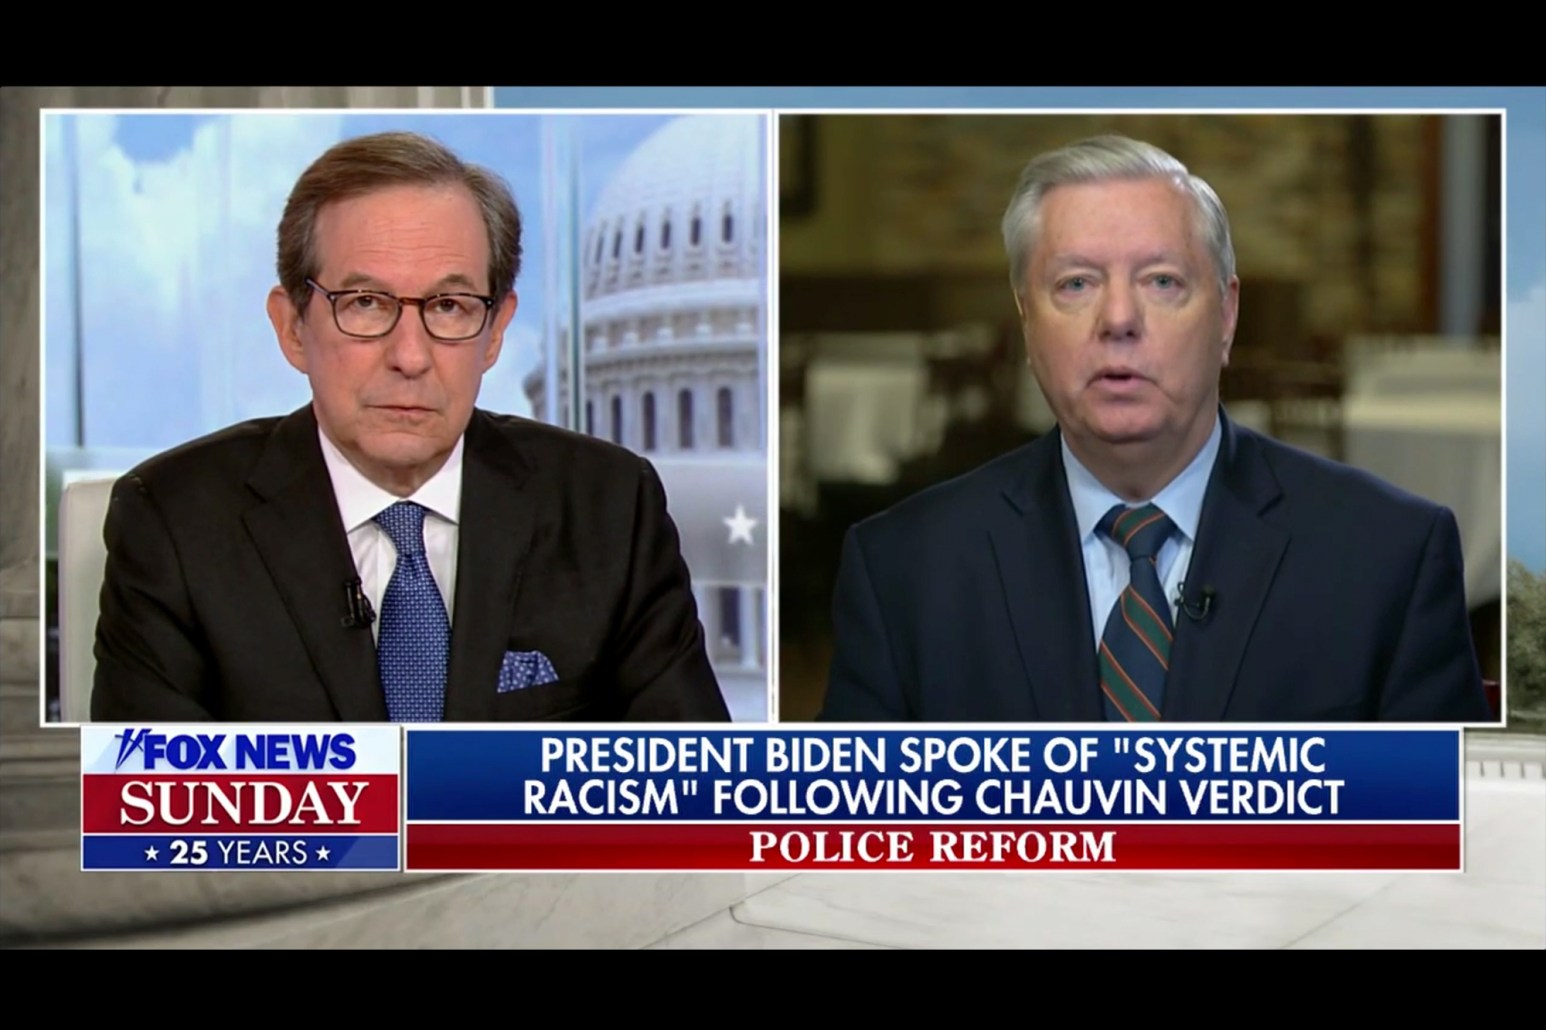 Lindsey Graham Denies the Reality of Systemic Racism Because Obama and Kamala Harris Were Elected